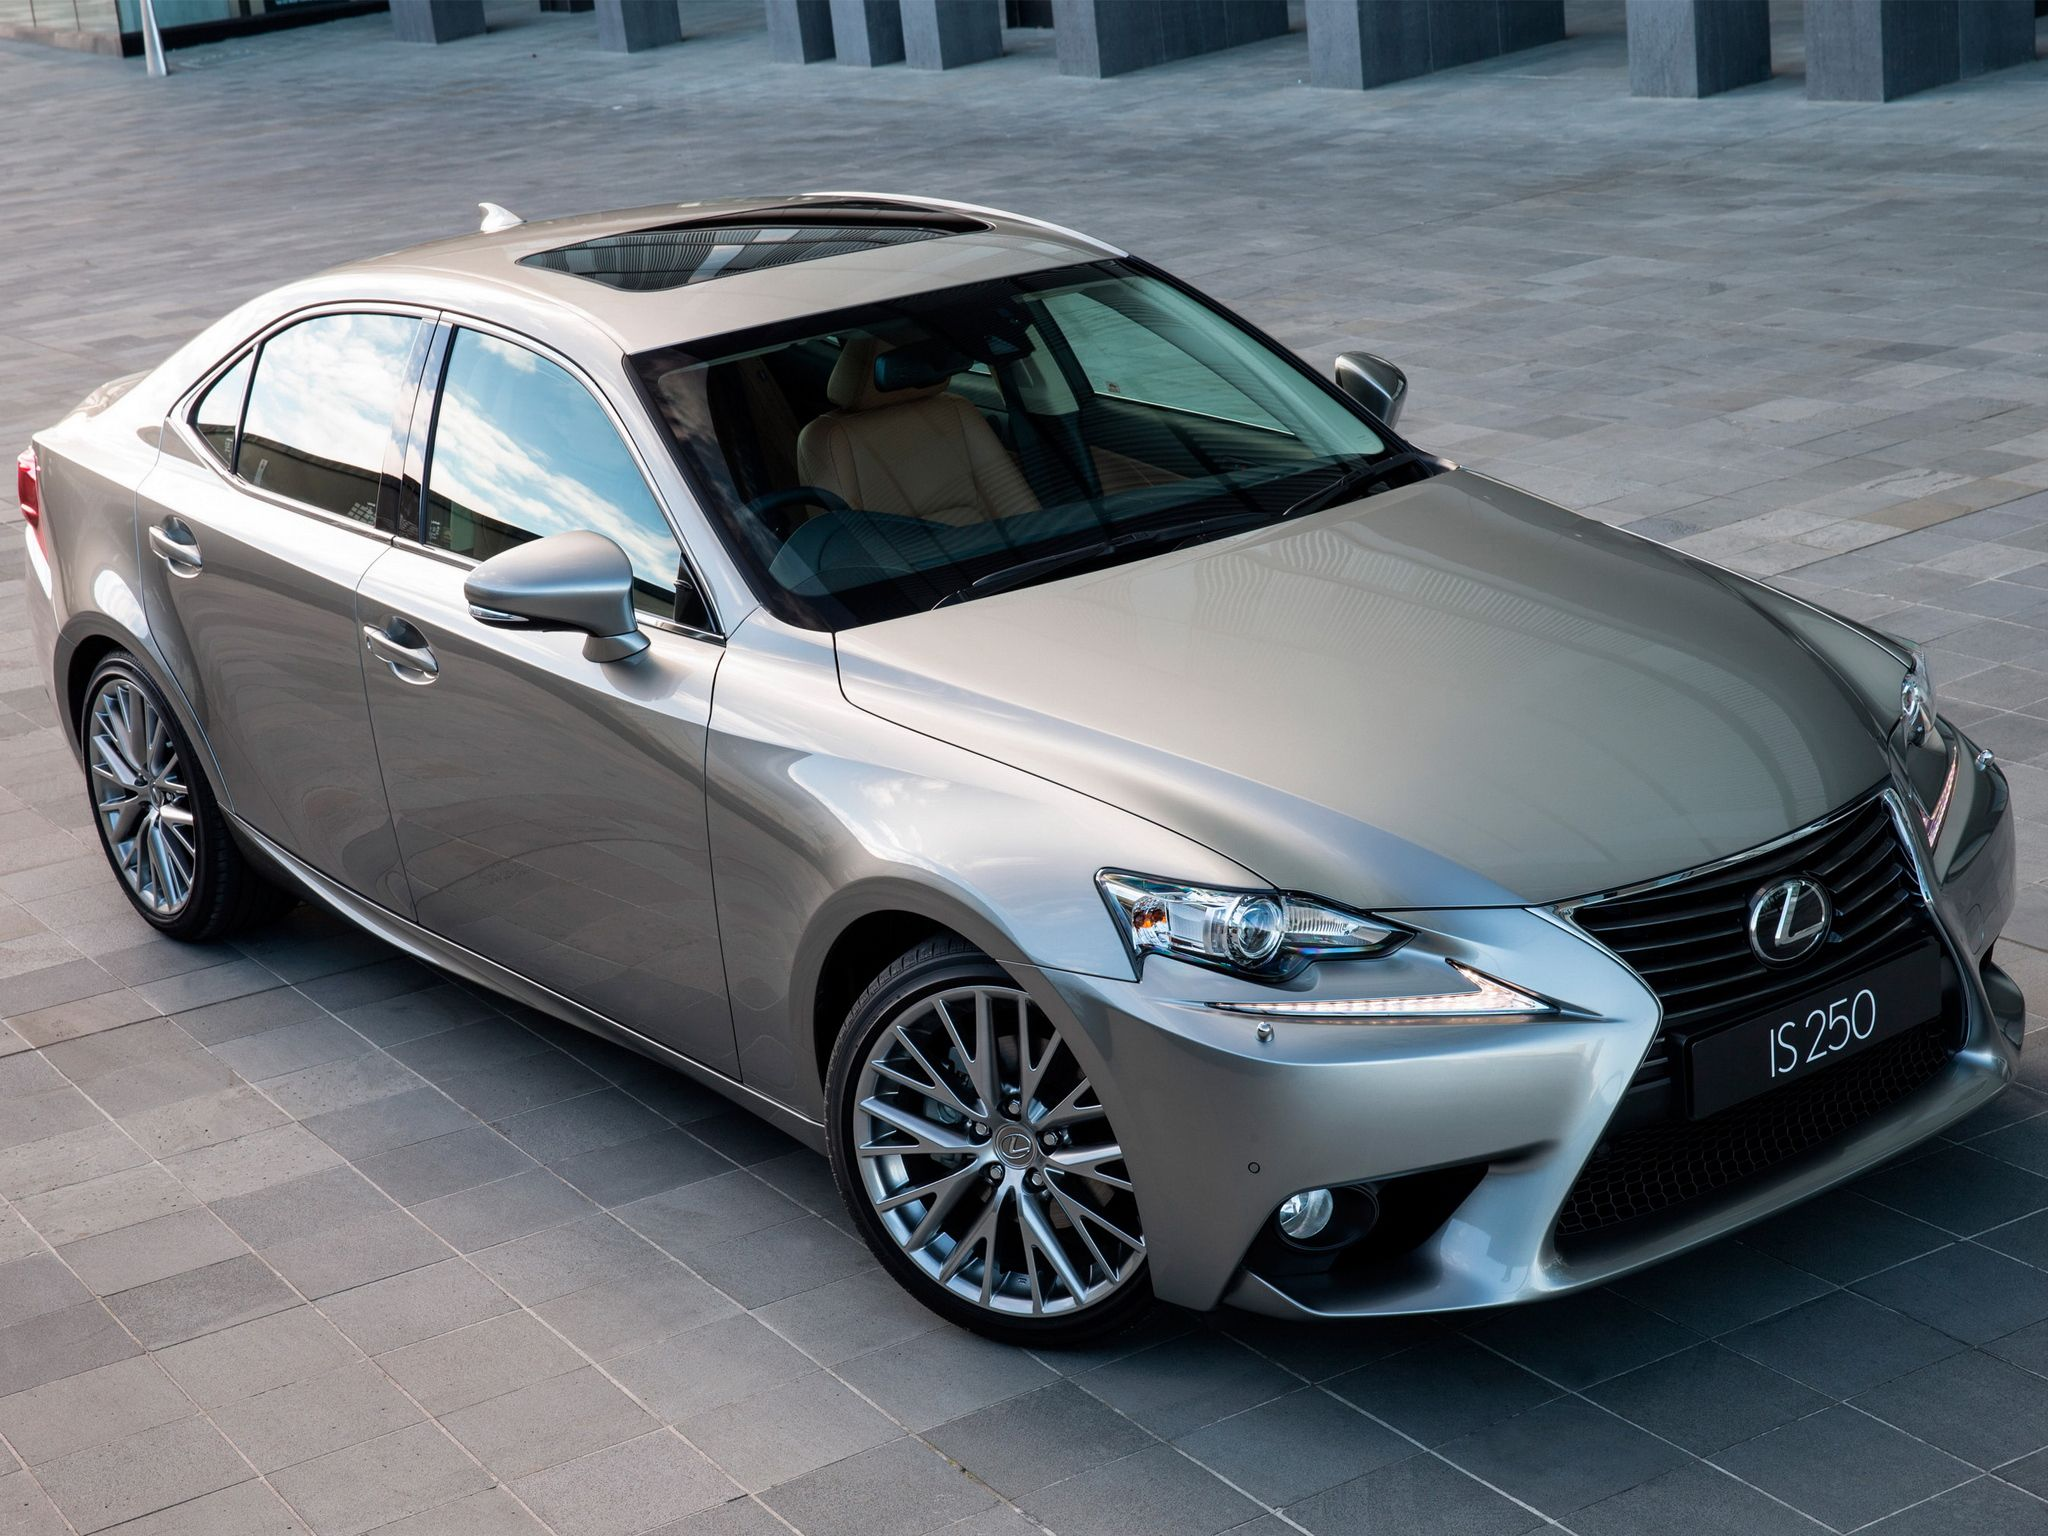 2013 Lexus IS 250 AU spec for my hubby only it needs to be black